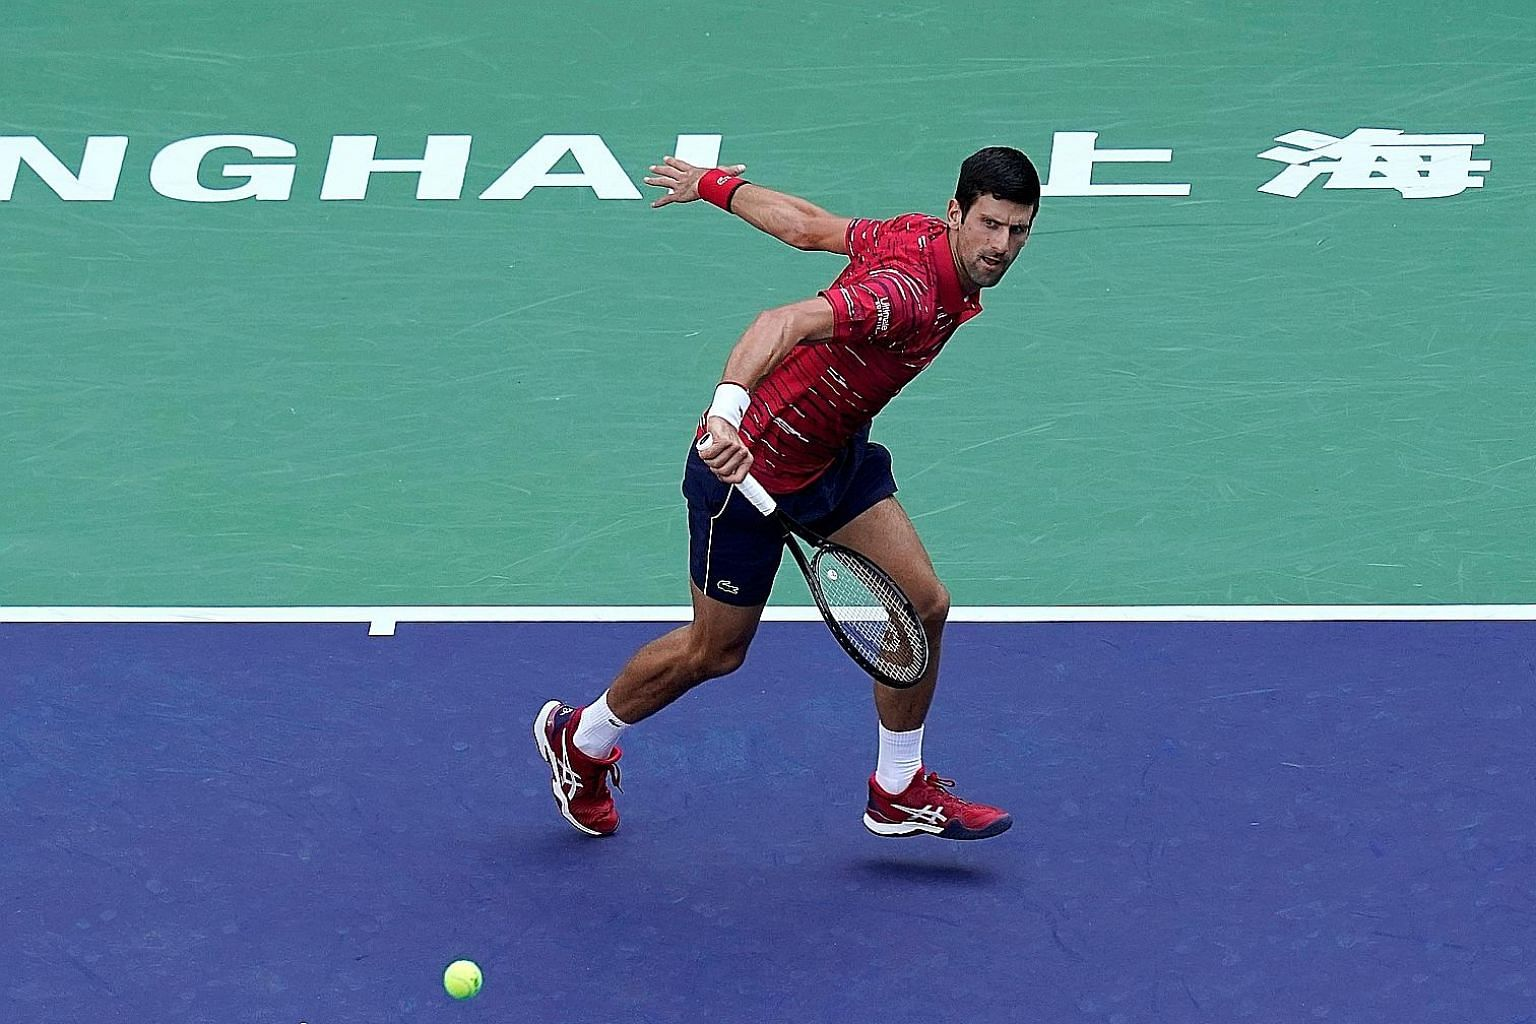 World No. 1 Novak Djokovic en route to defeating American John Isner 7-5, 6-3 yesterday. He will play Greece's Stefanos Tsitsipas in the Shanghai Masters quarter-finals today. PHOTO: REUTERS